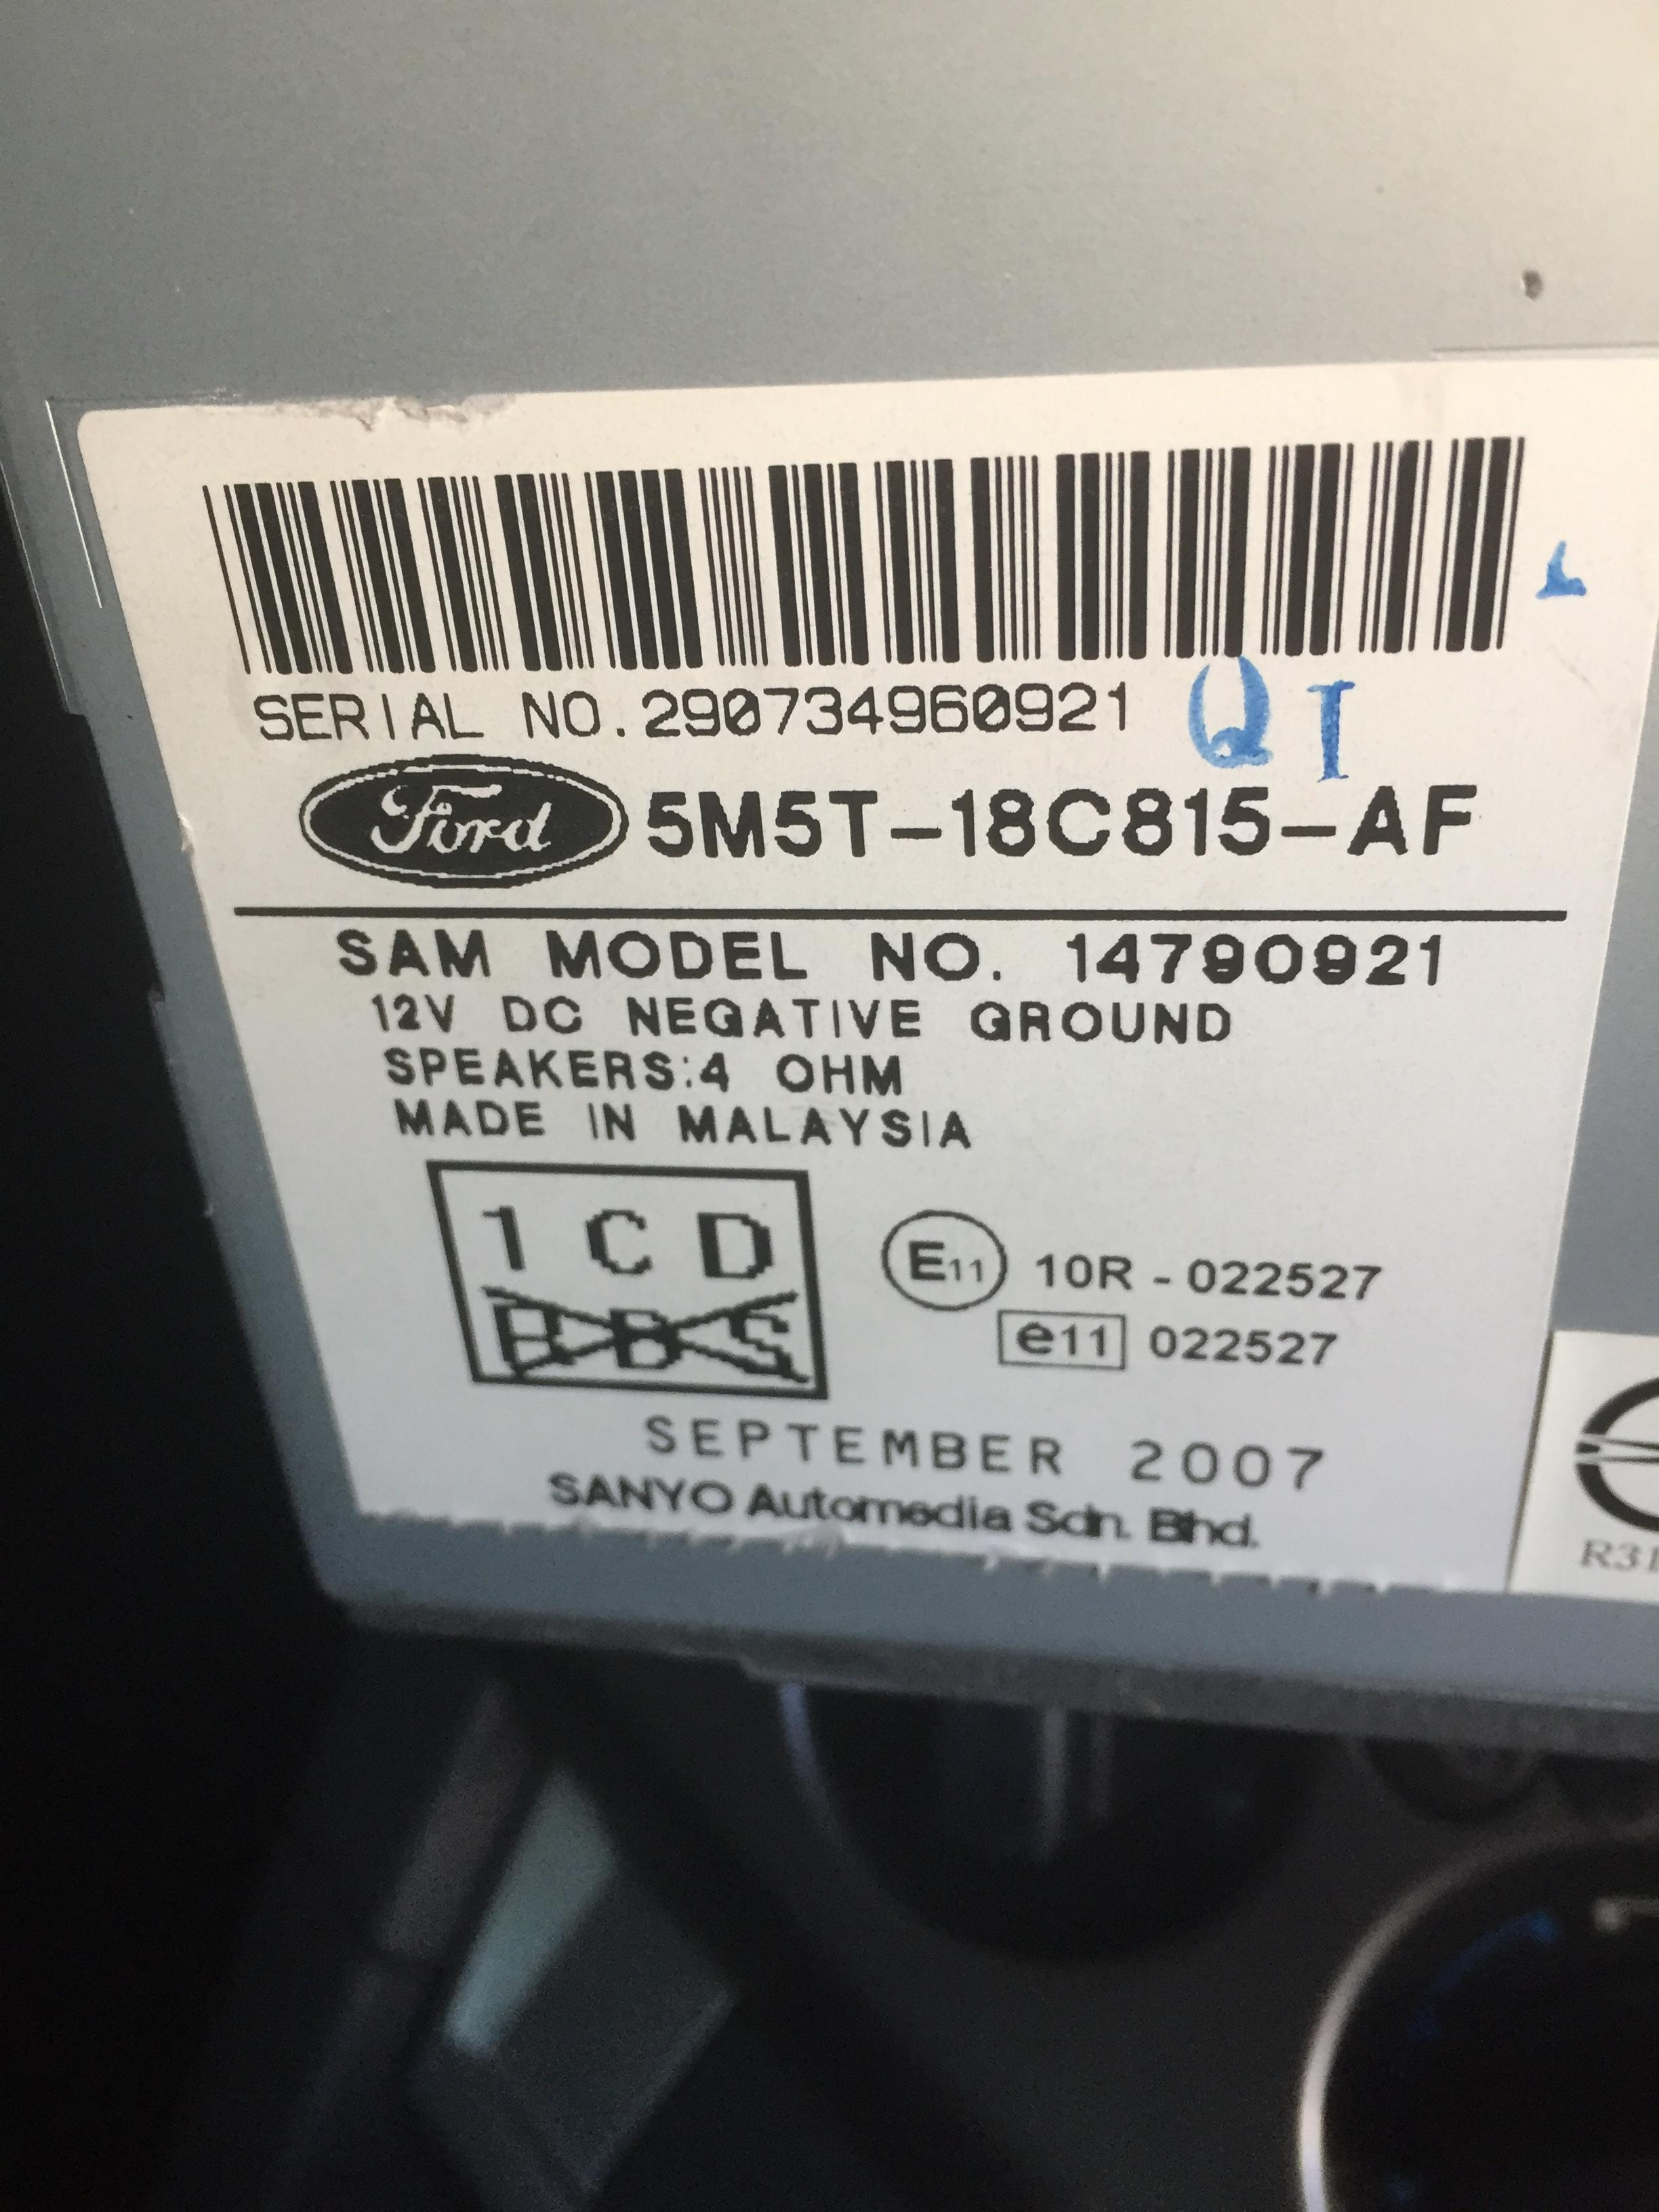 1639x found in owners manual of f150 2004